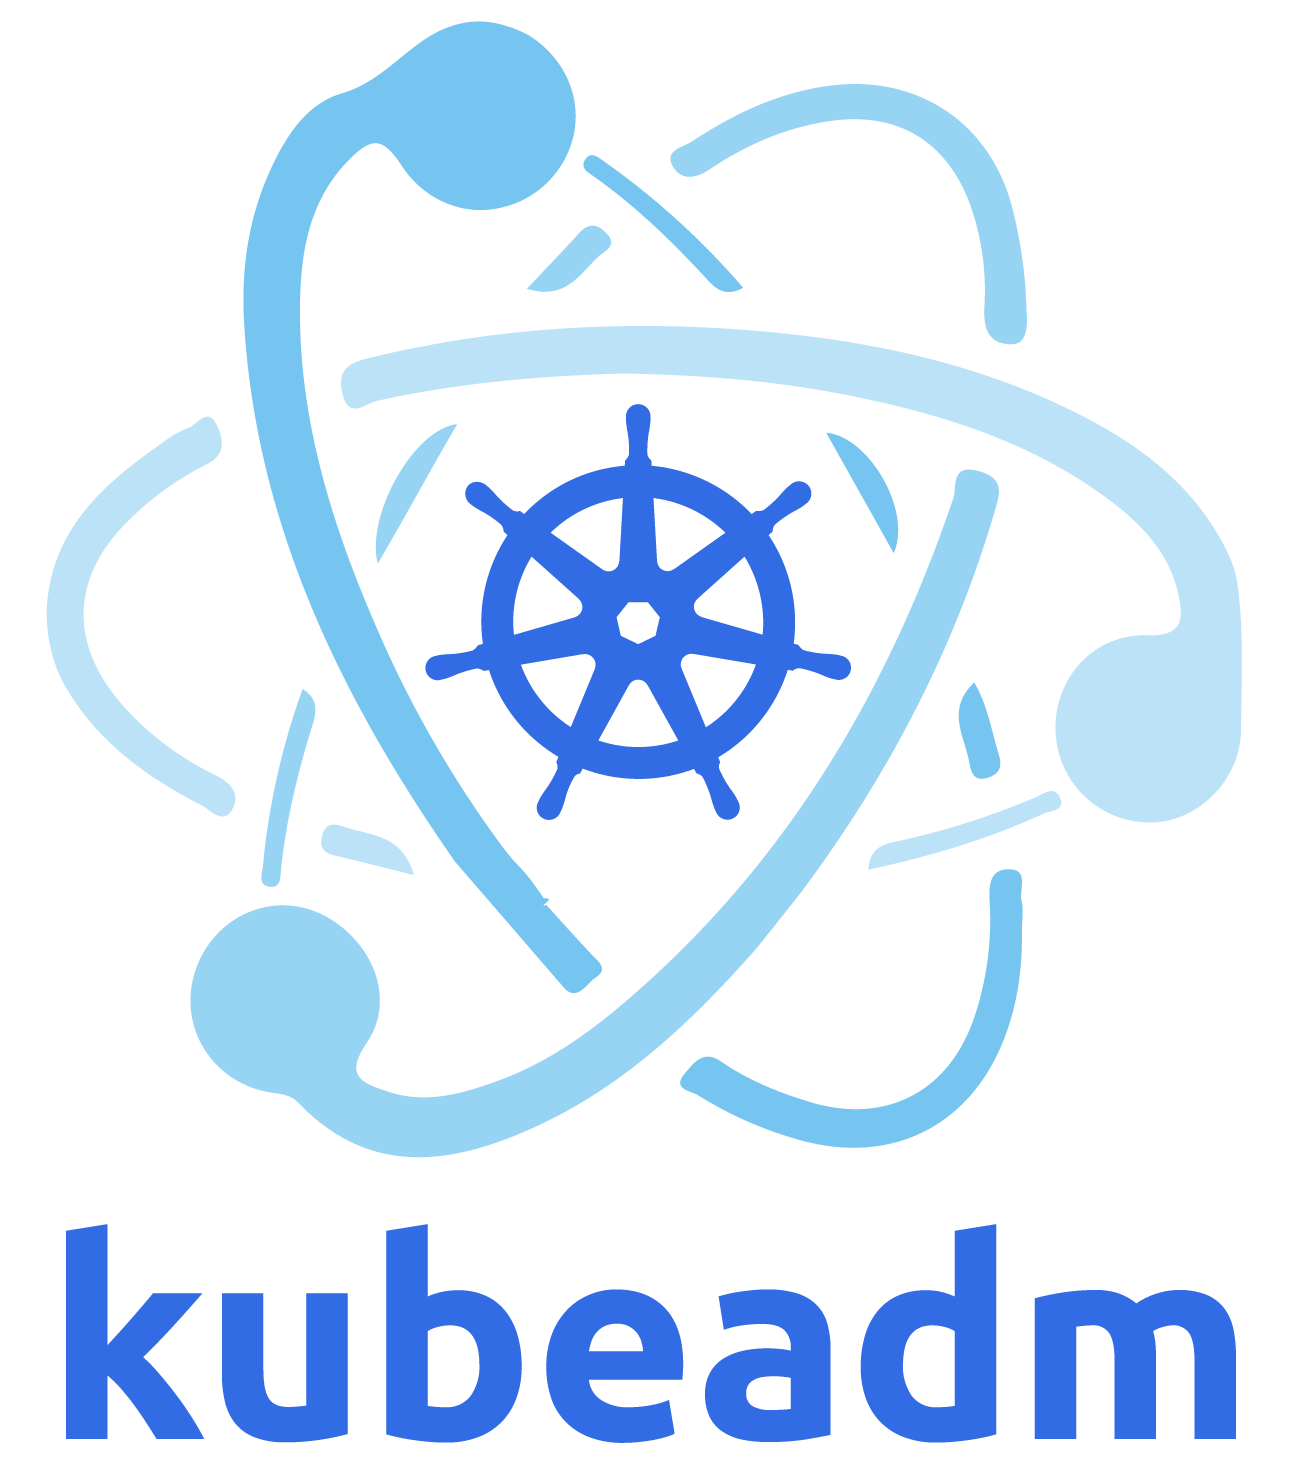 kubeadm-stacked-color.png